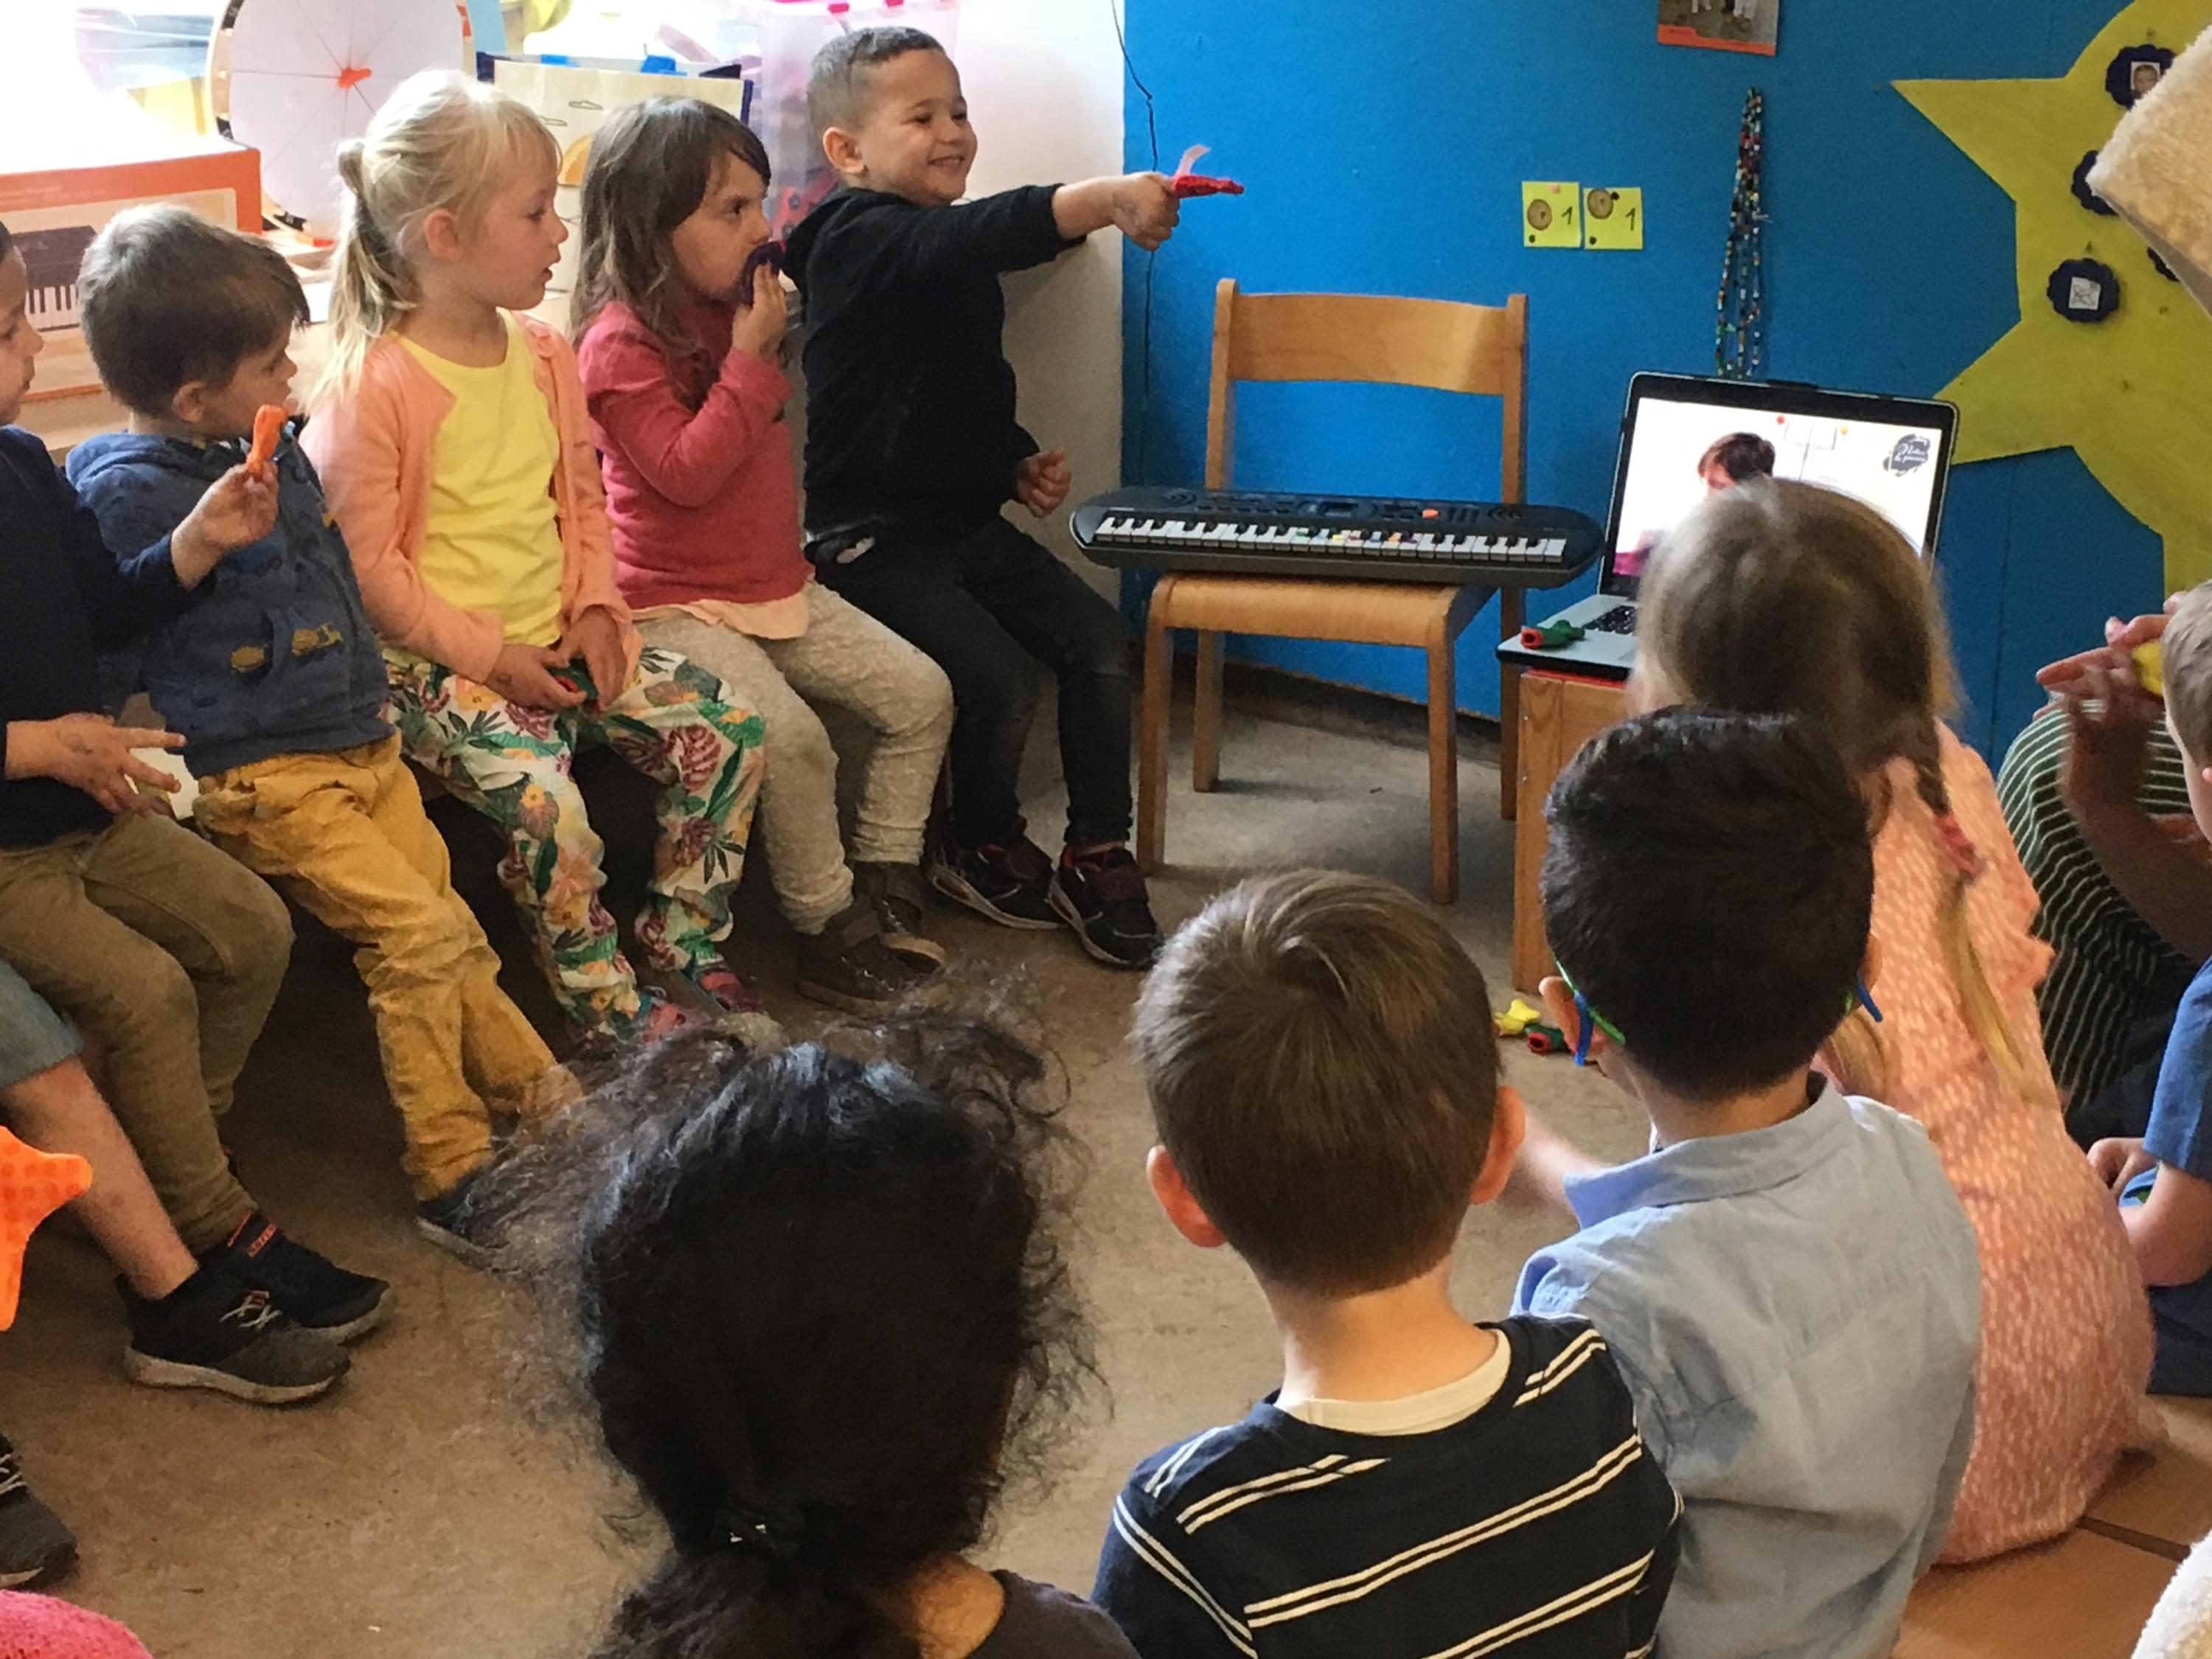 https://www.childrenarecomposers.com/school